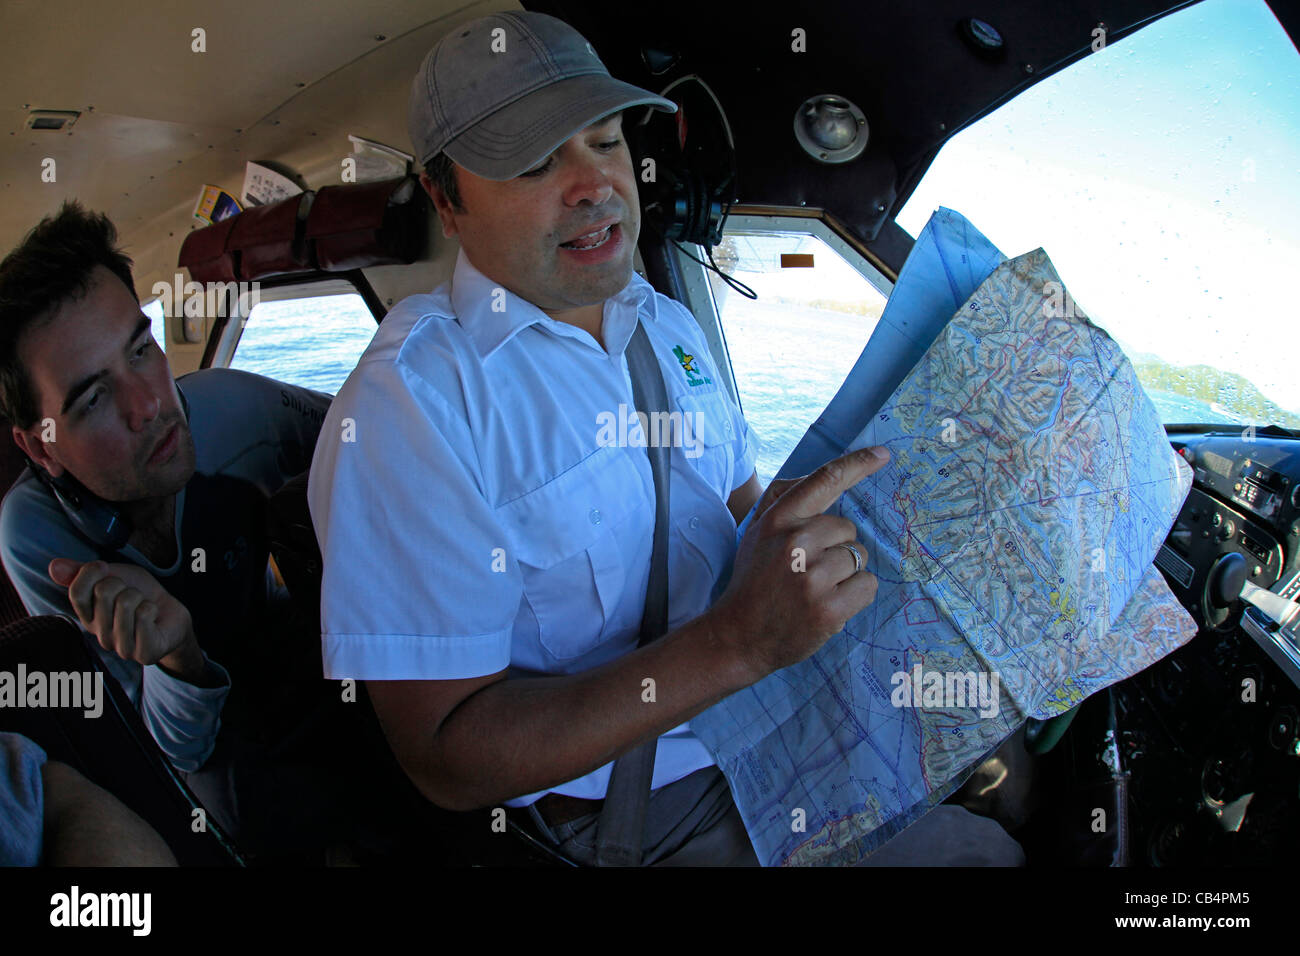 A floatplane pilot explains the scenic route to be taken at Vancouver Island - Stock Image